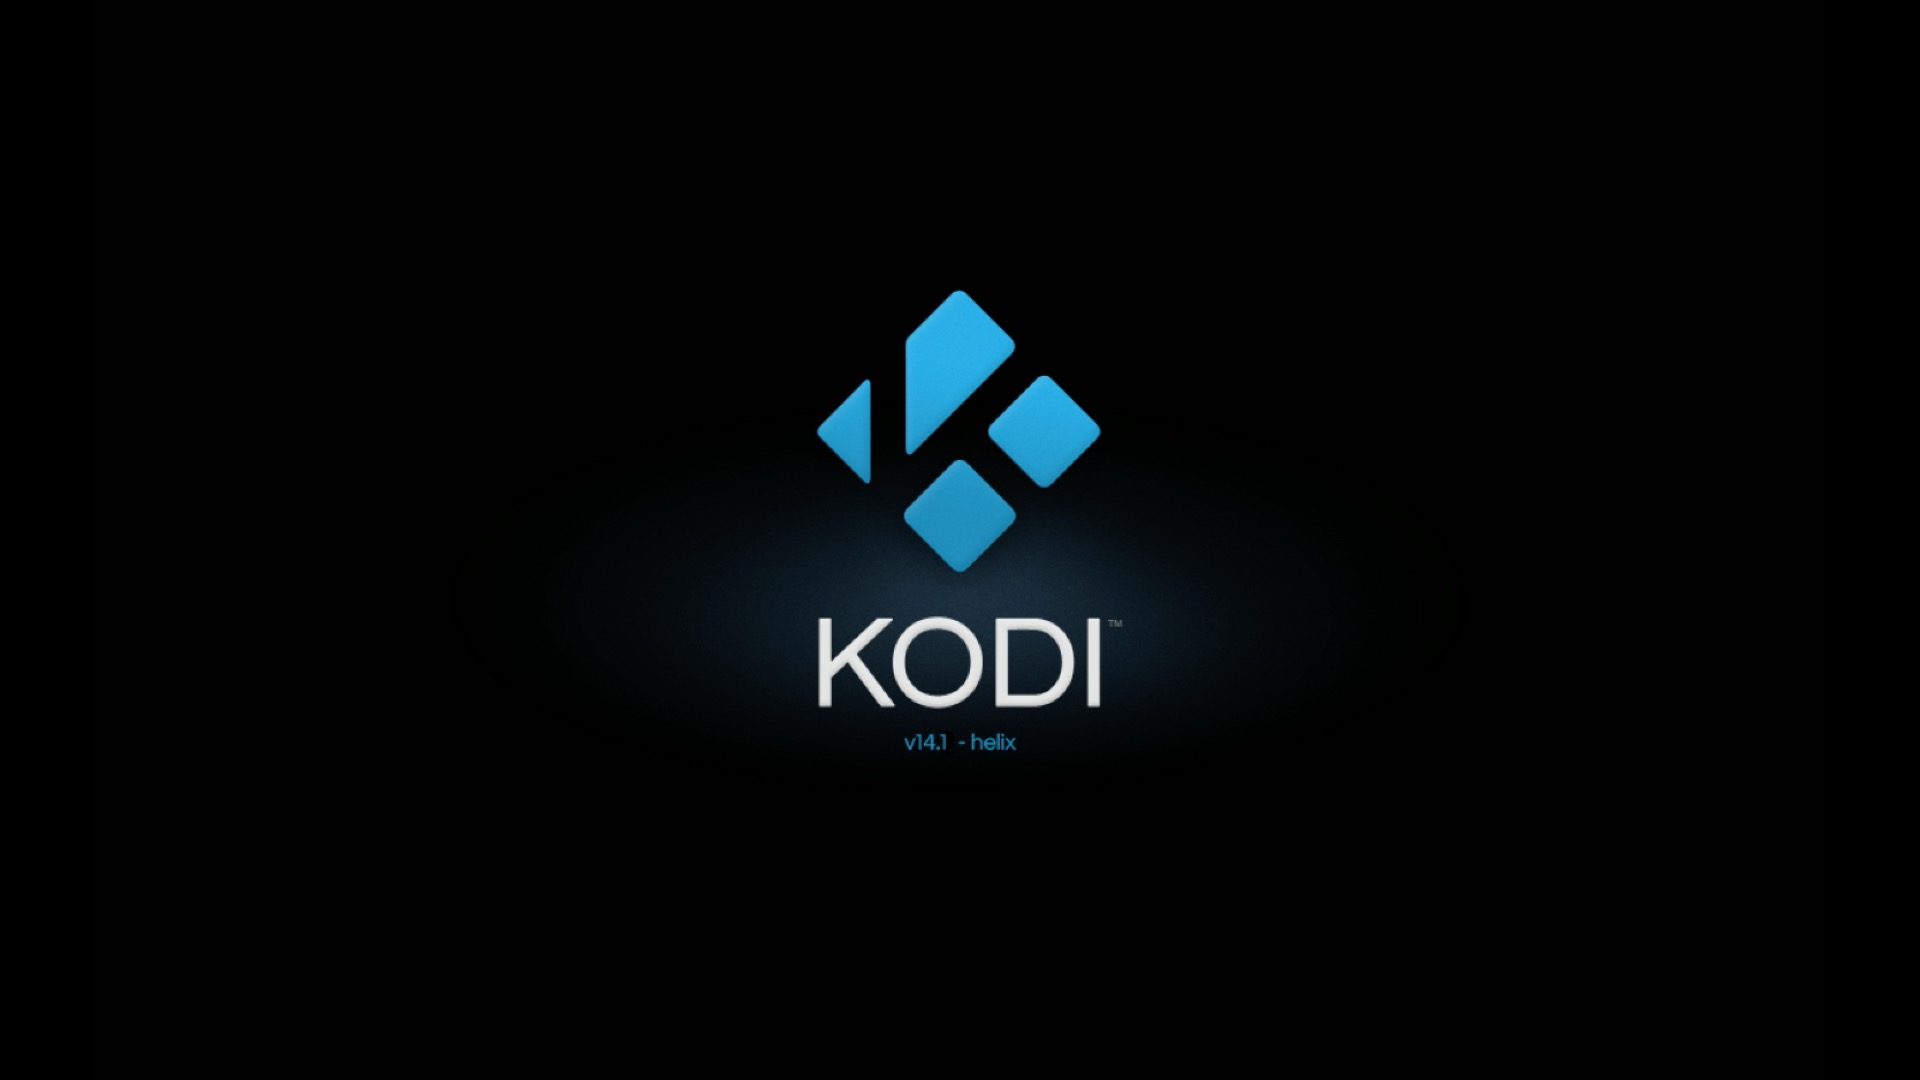 VIDEO – How To Install Kodi, (XBMC), on iPhone, iPad And iPod Touch